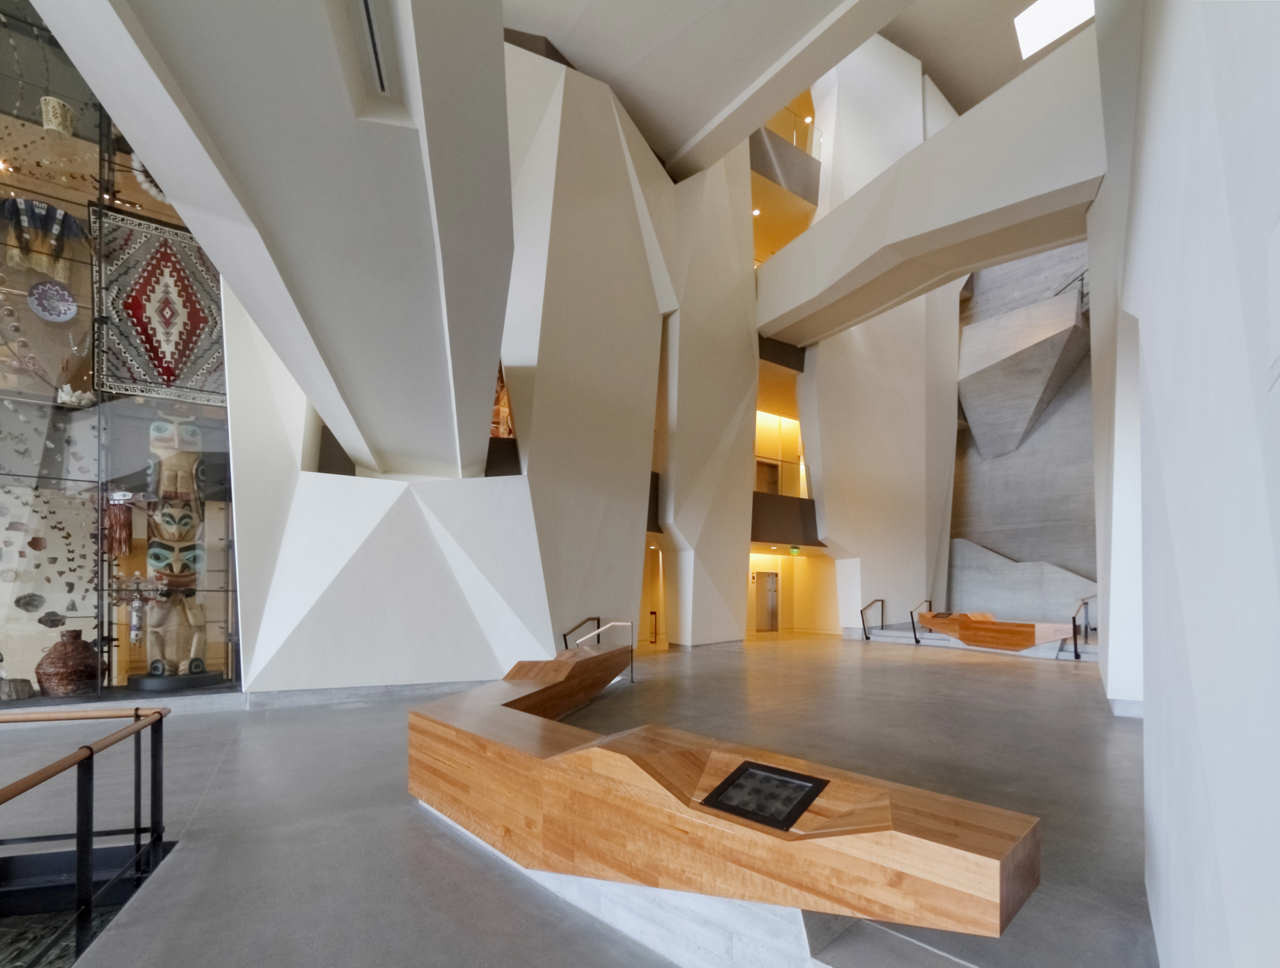 Gallery Of Archdaily Editors Select 20 Amazing 21st Century Museums 10